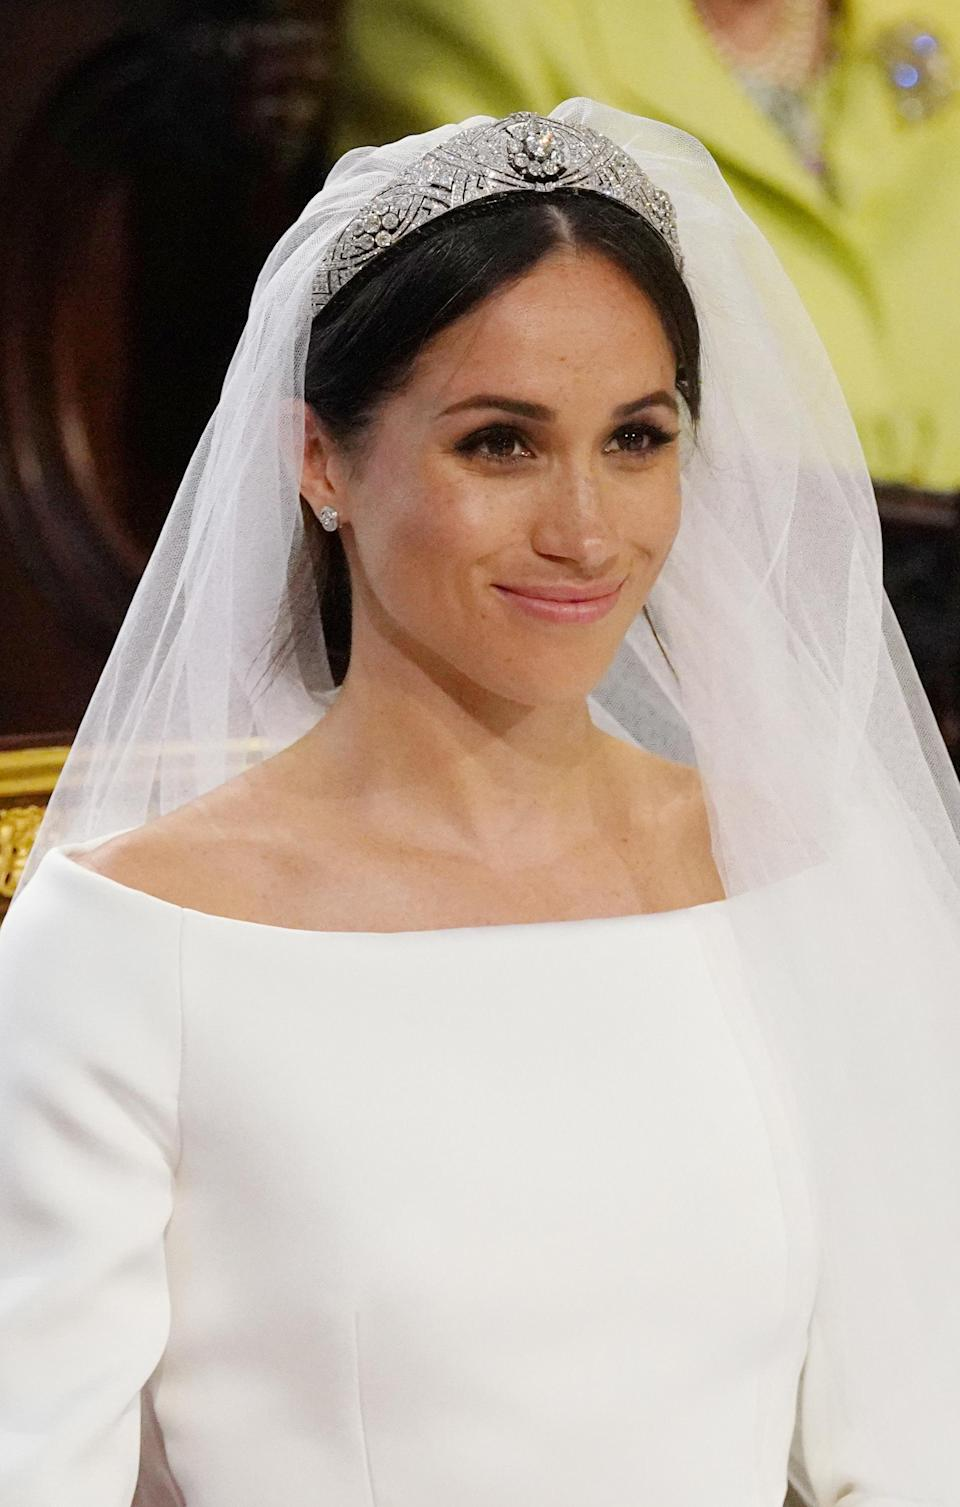 <p>Meghan Markle accessorized with earrings and a bracelet from Cartier. (Photo: Jonathan Brady/AFP/Getty Images) </p>